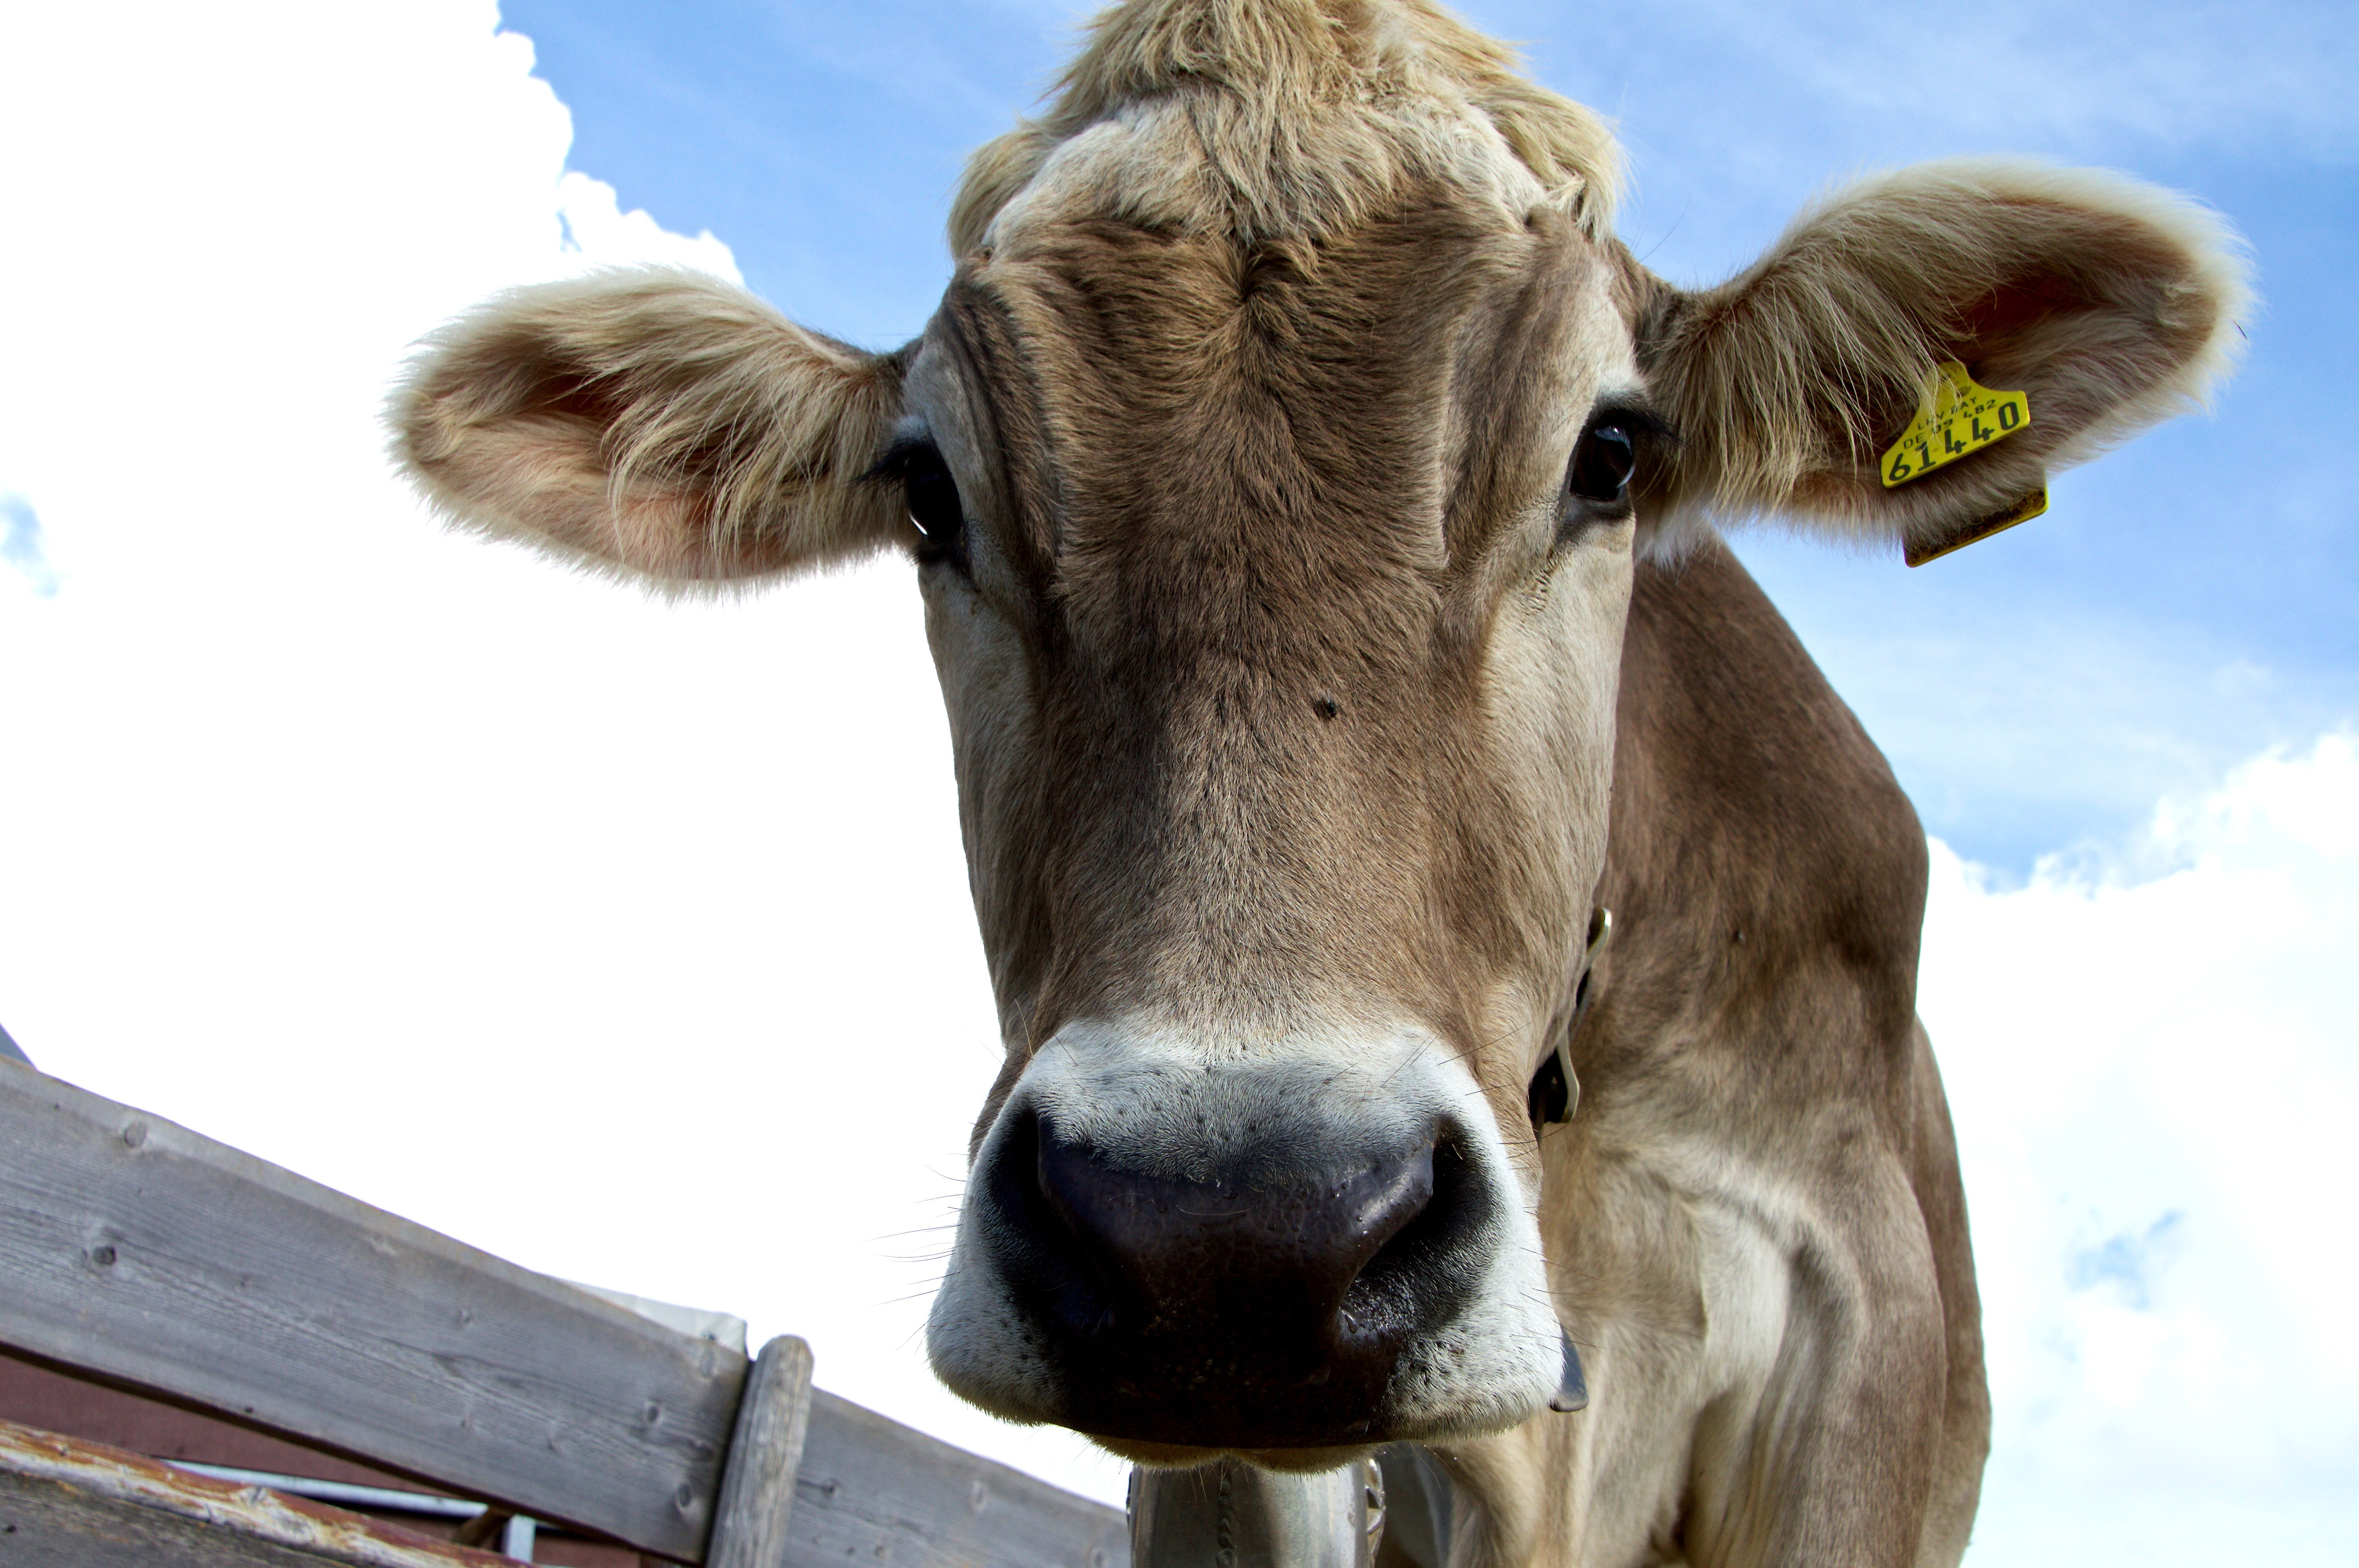 Brown Cattle Under White and Blue Sky